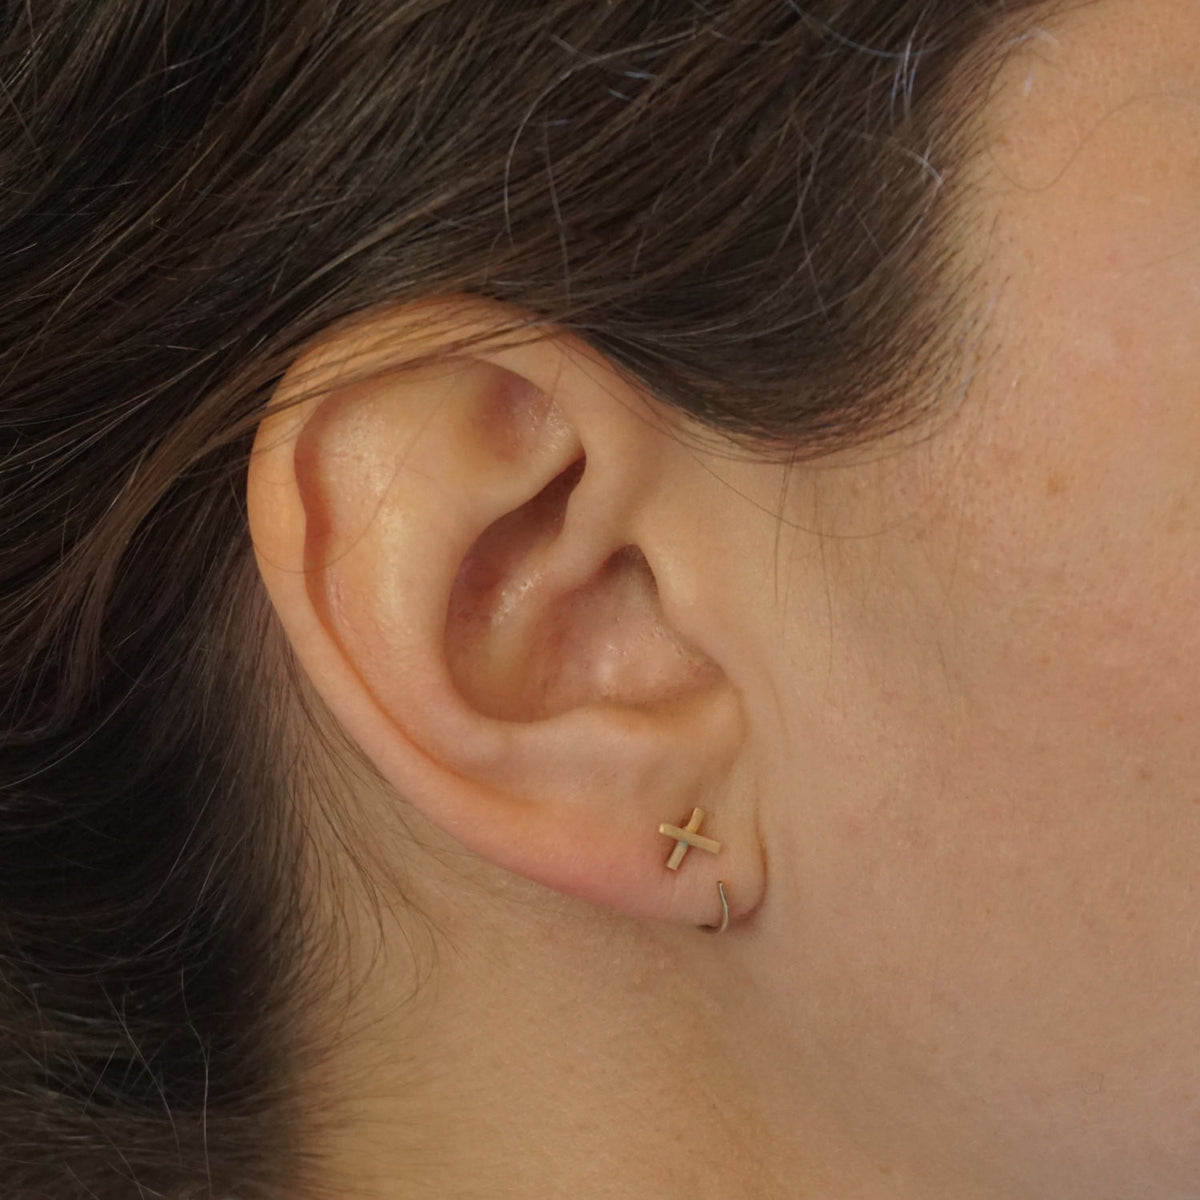 Hand-Made Modern Chic X Staple, Ear Hugging Hoops -  0269 - Virginia Wynne Designs